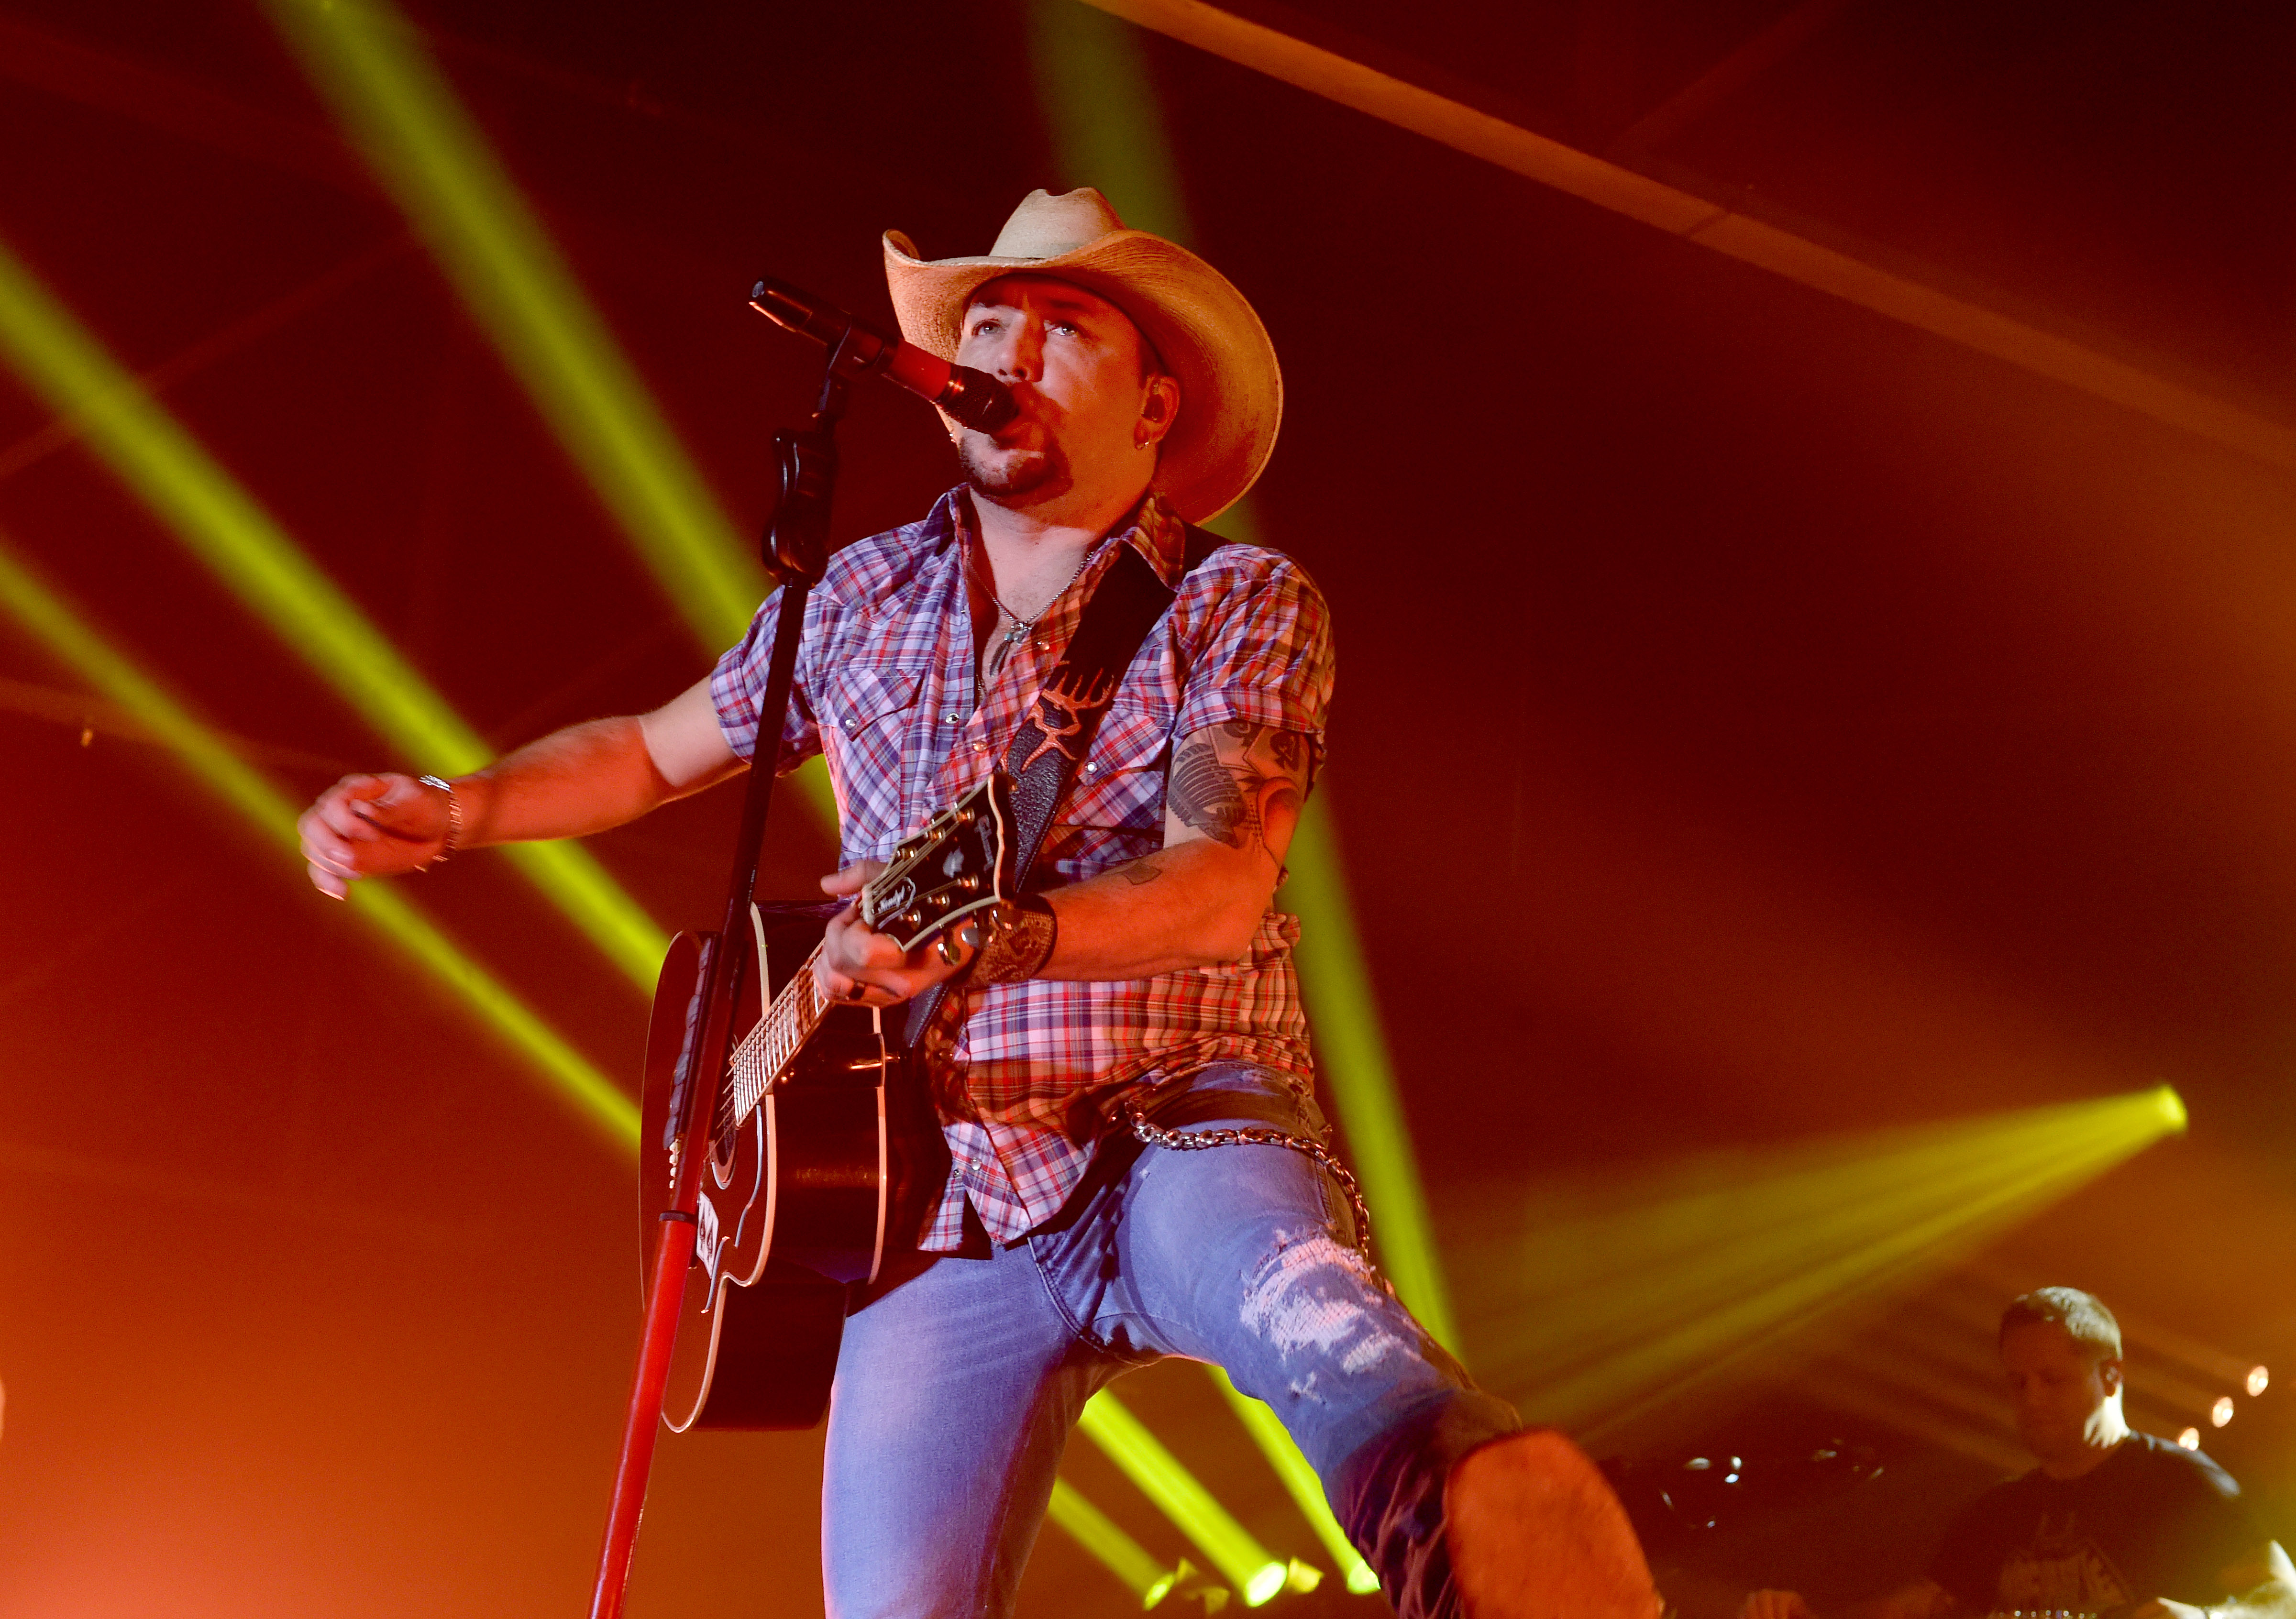 Jason Aldeans 2019 Ride All Night Tour See Tour Dates Rolling Stone